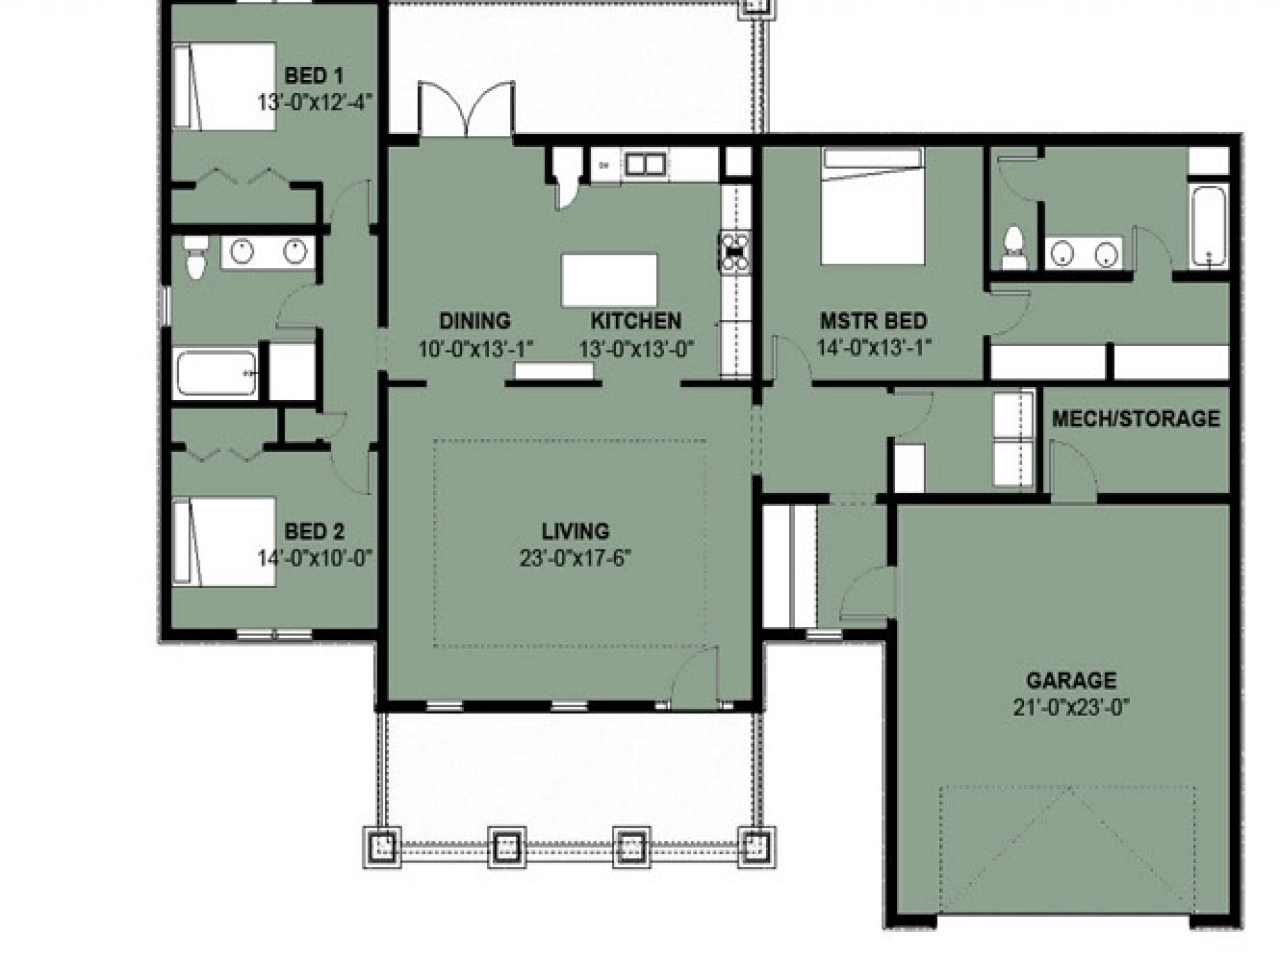 Simple 3 bedroom house floor plans simple 3 bedroom 2 bath for 5 bedroom 3 5 bath house plans